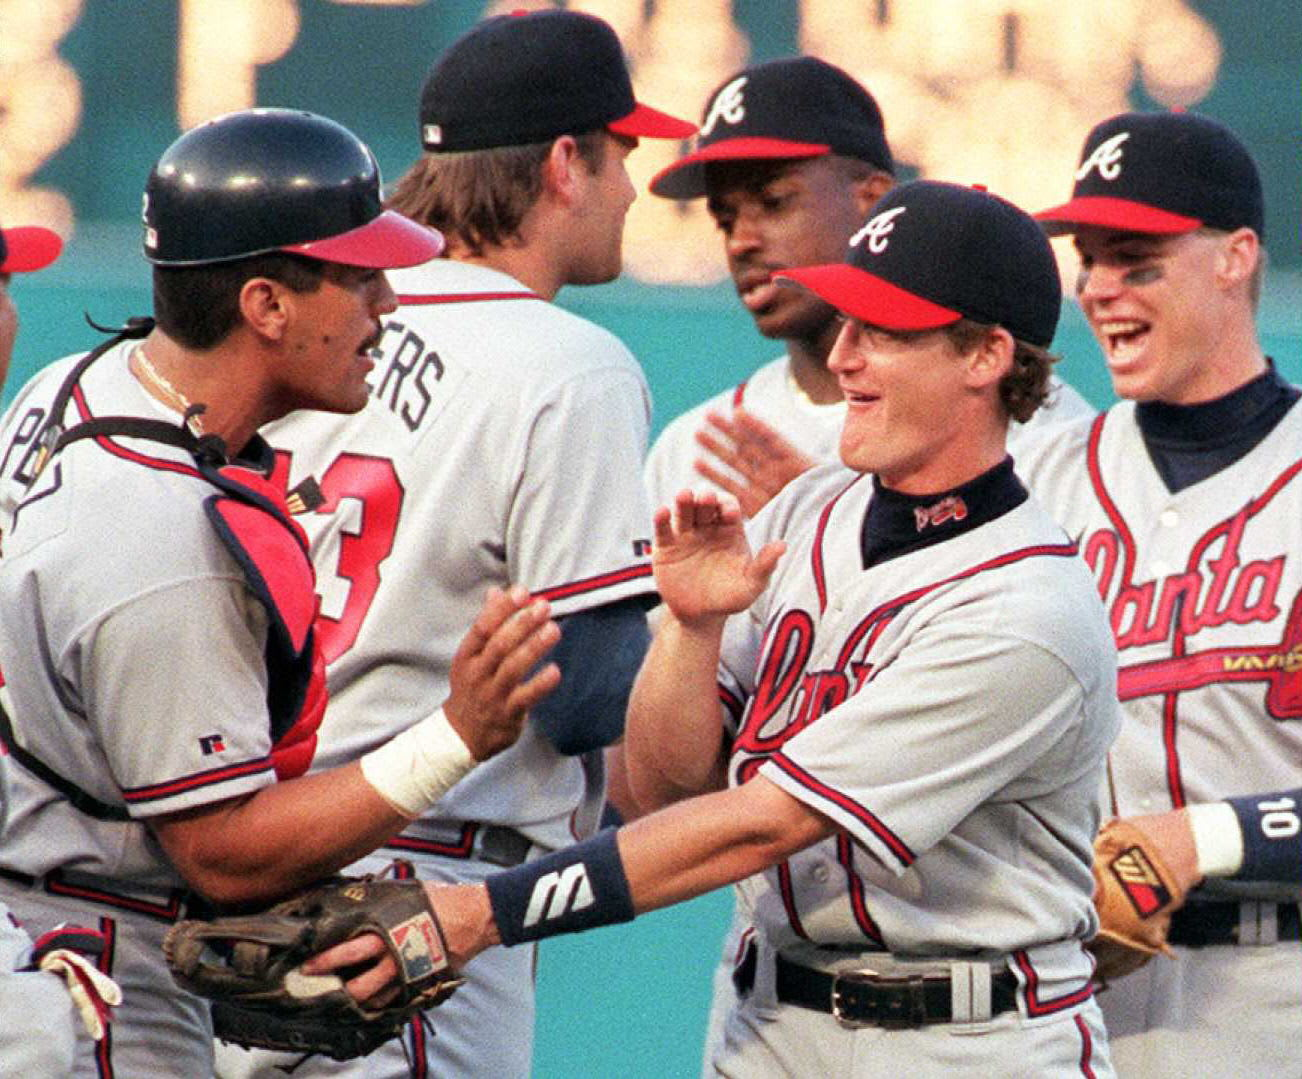 Atlanta Braves' shortstop Jeff Blauser is congratulated by catcher Javy Lopez (L). Blauser hit a two run home run in the game. AFP PHOTO Rhona WISE (Photo credit RHONA WISE/AFP via Getty Images)